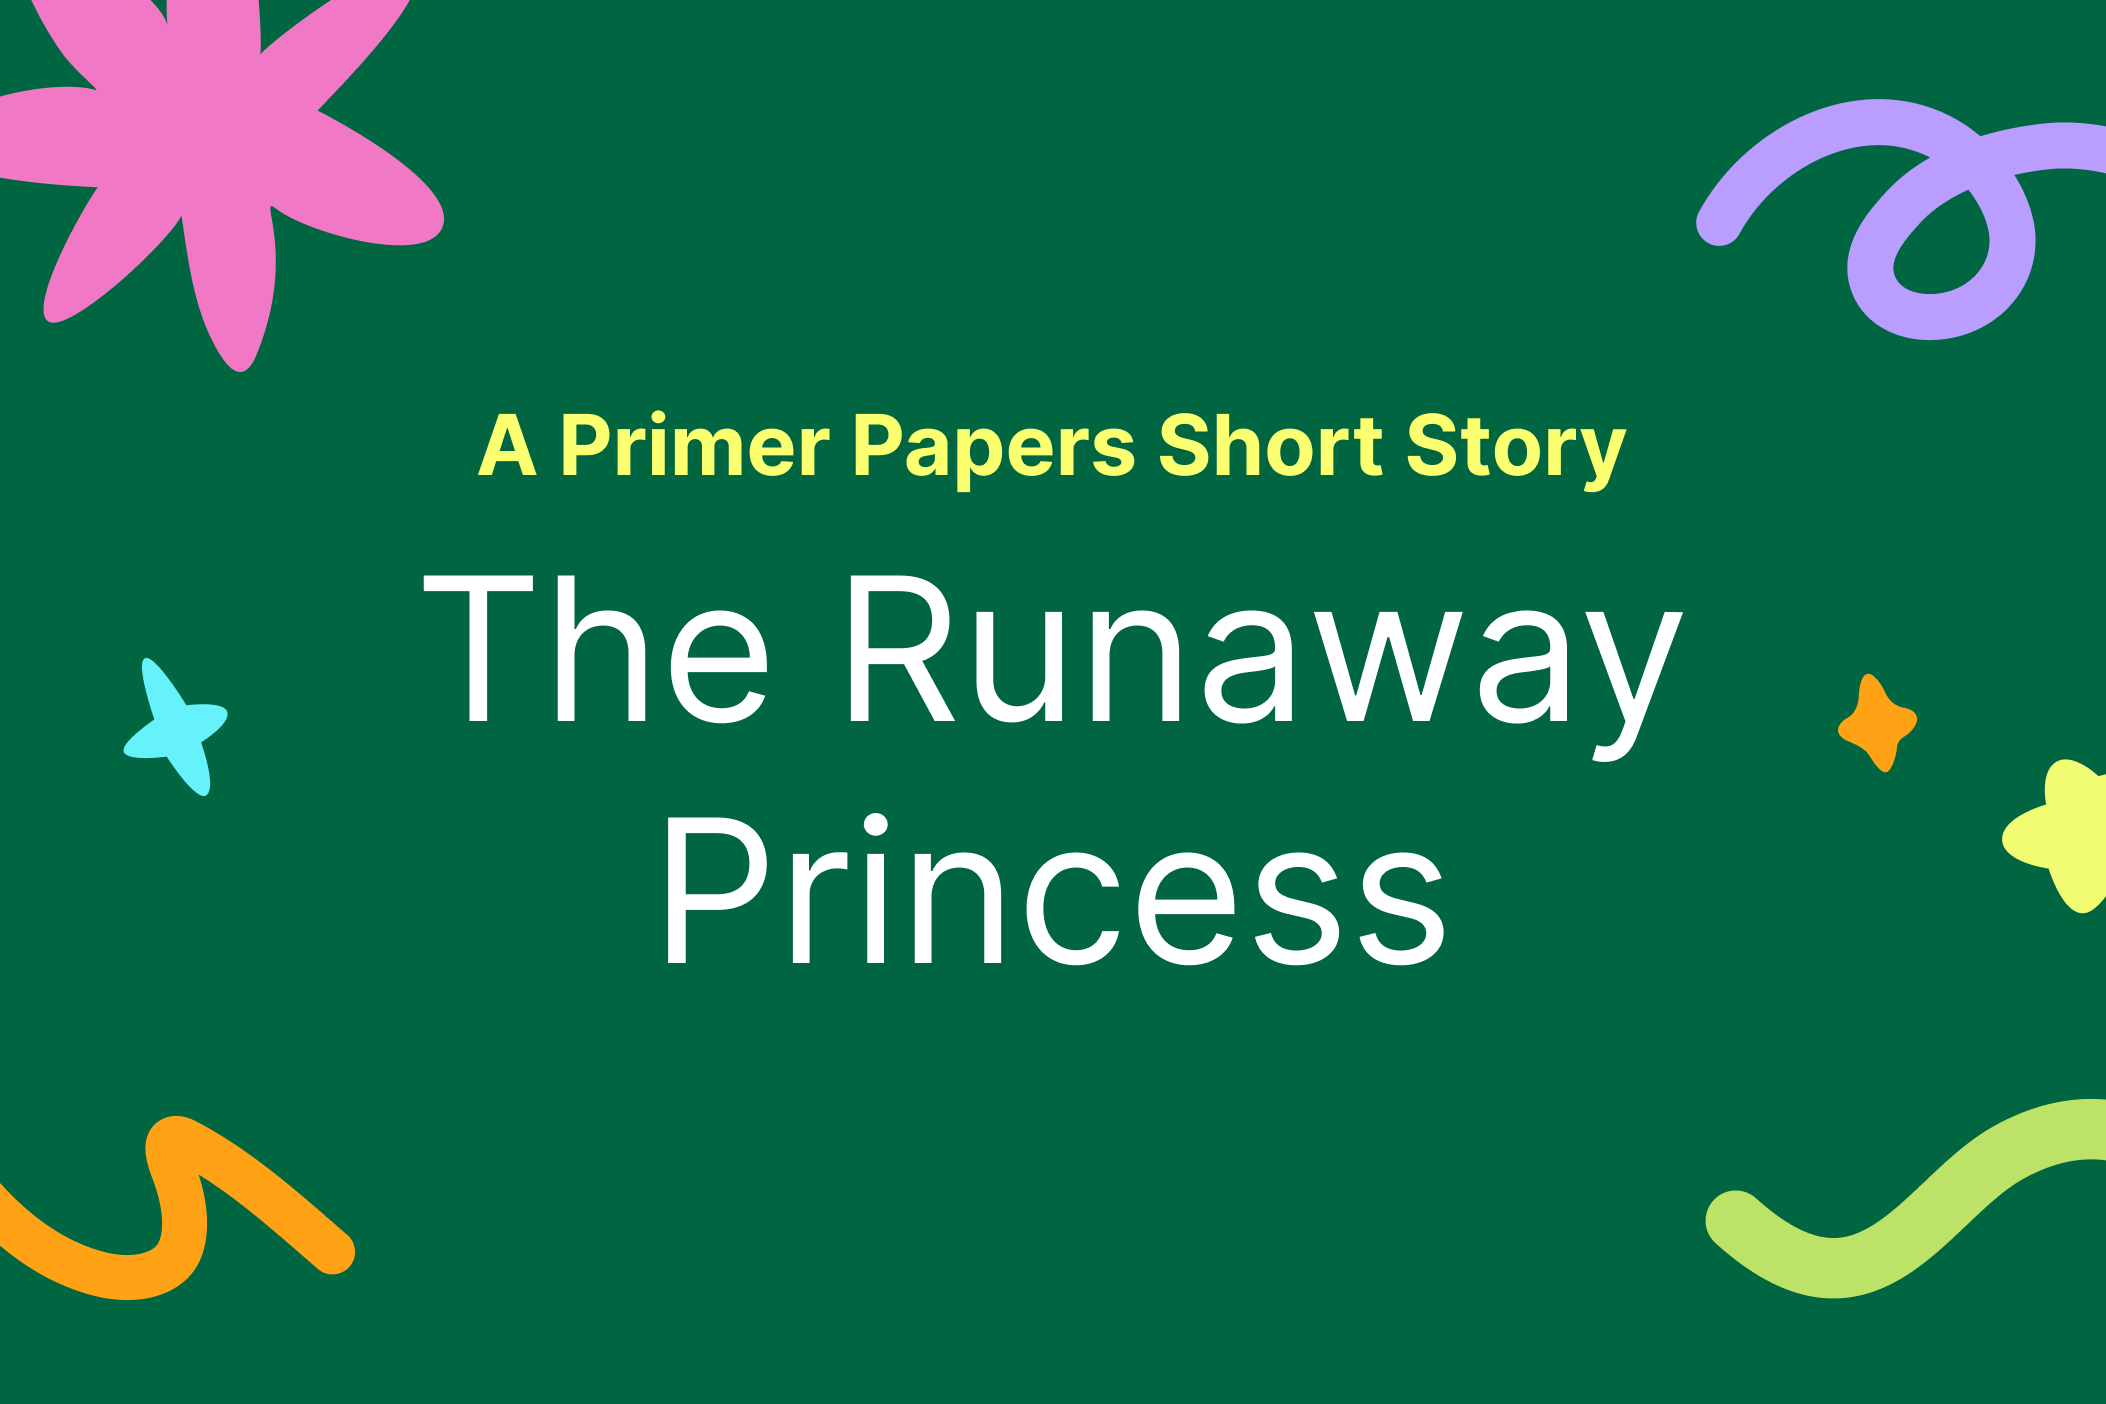 The Runaway Princess by Marinette